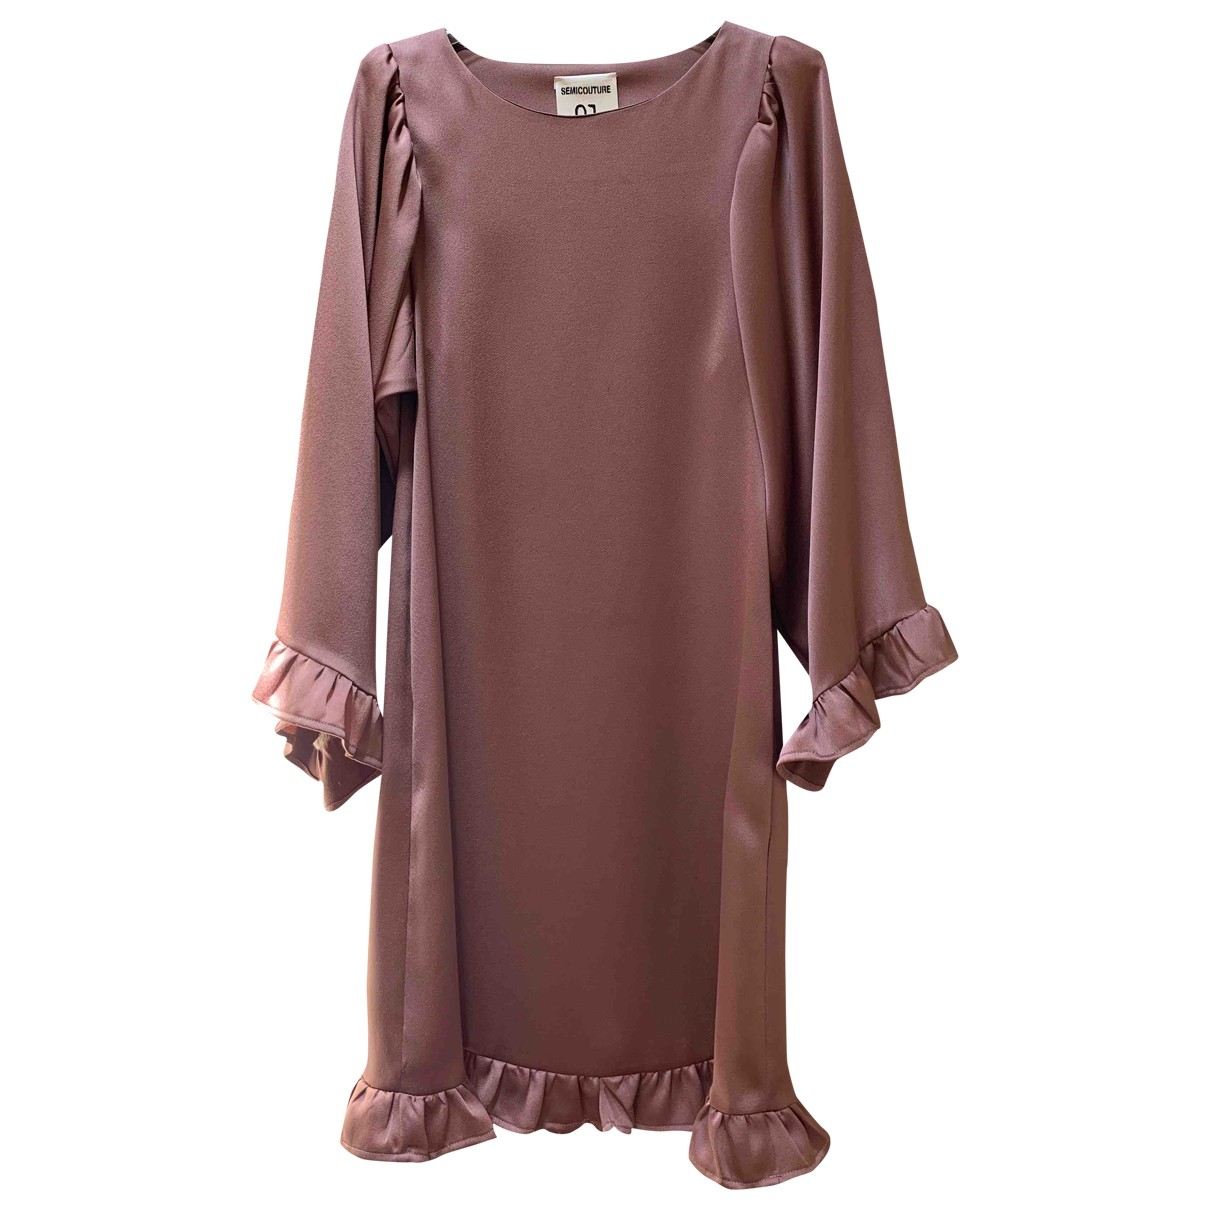 Semicouture \N Pink dress for Women 38 IT